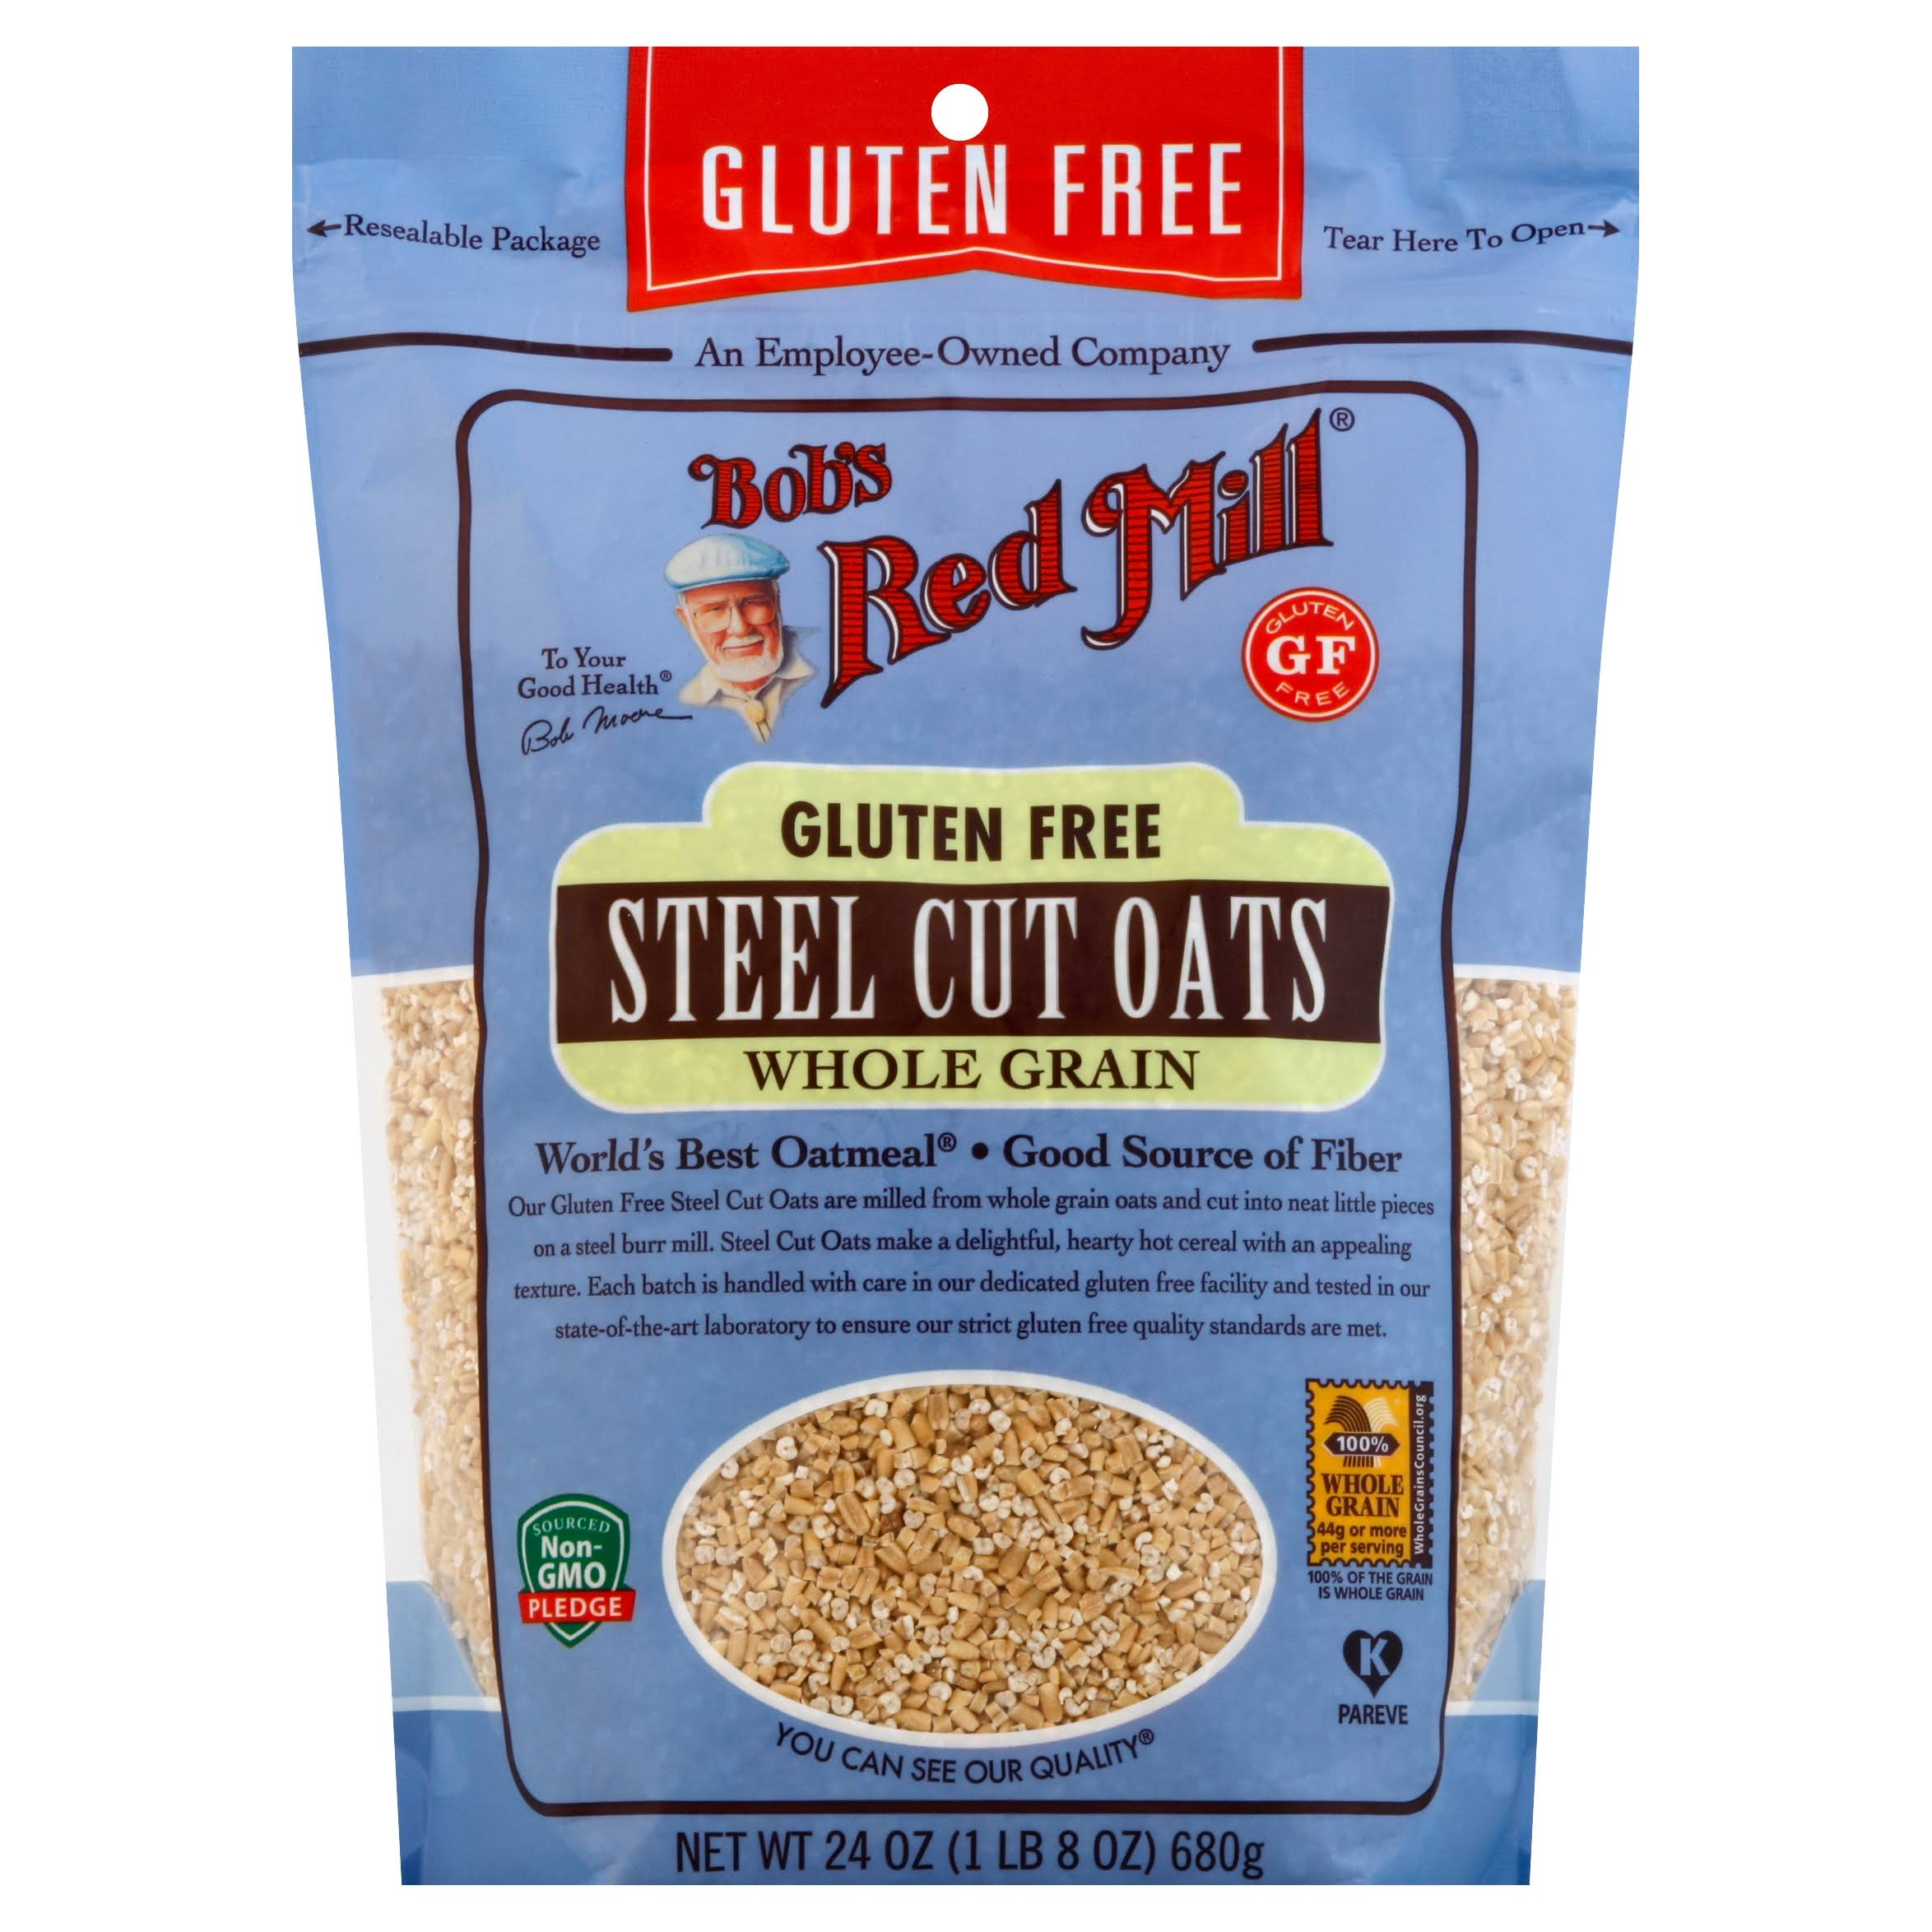 Bobs Red Mill Steel Cut Oats, Whole Grain - 24 oz